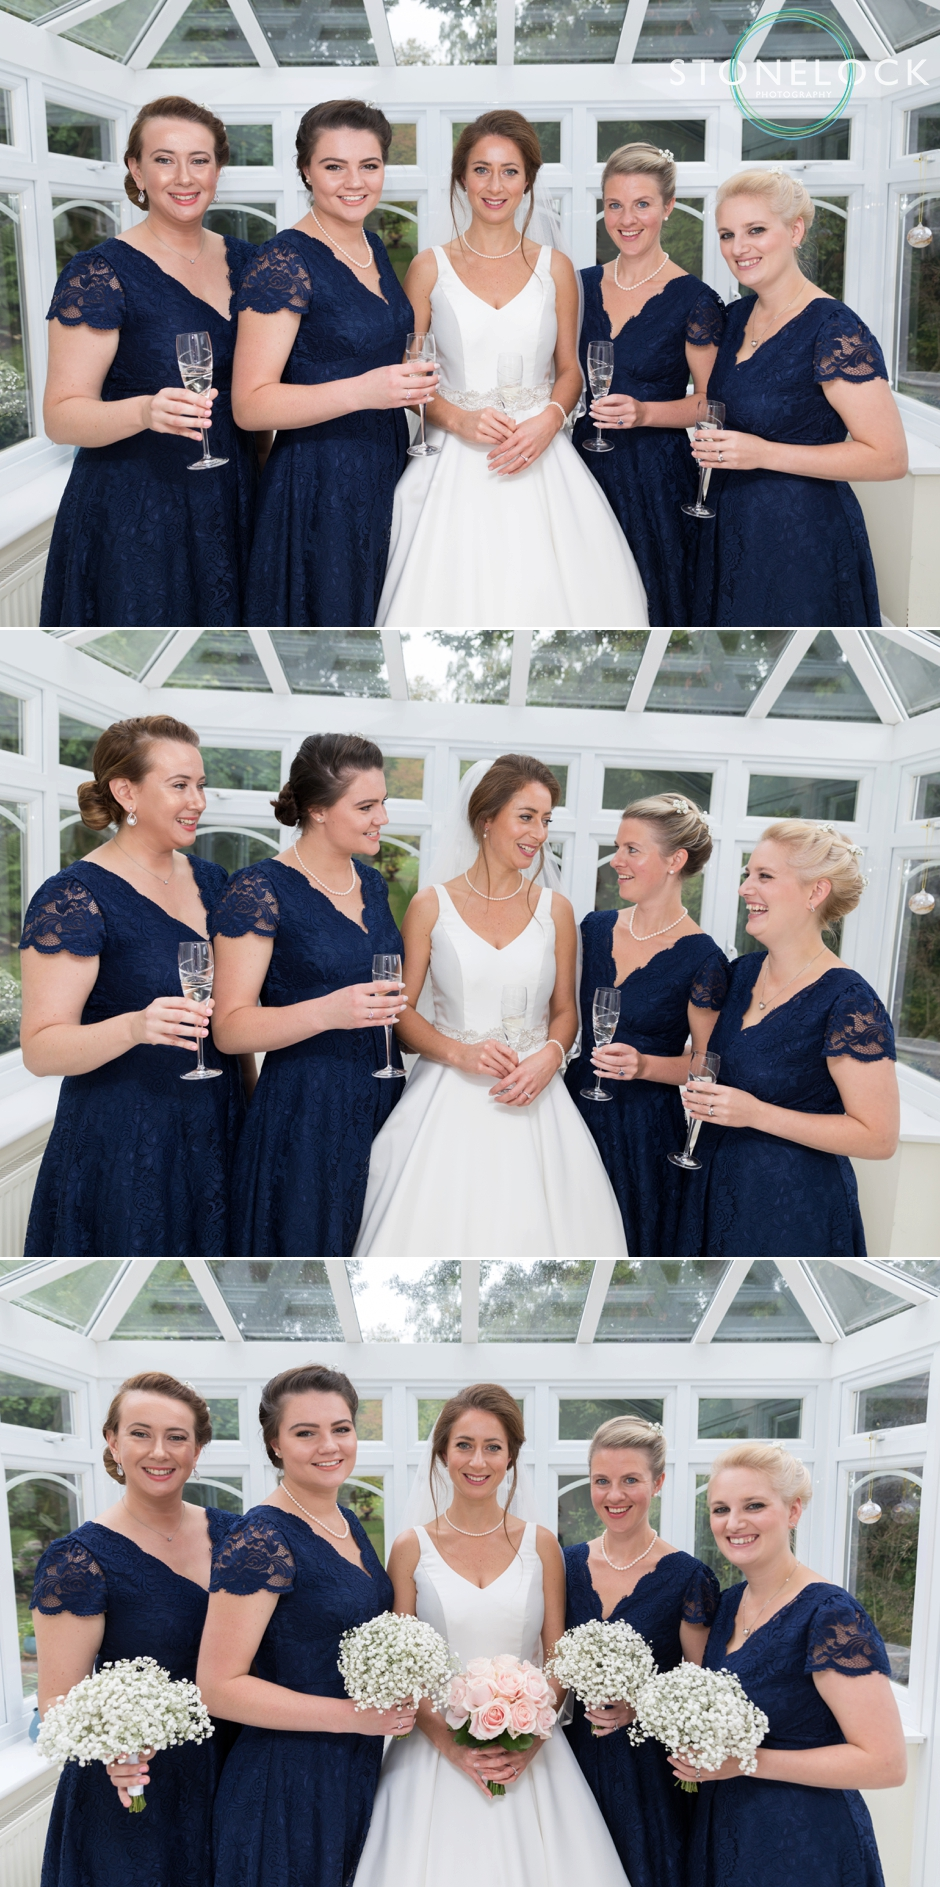 A bride with her bridesmaids